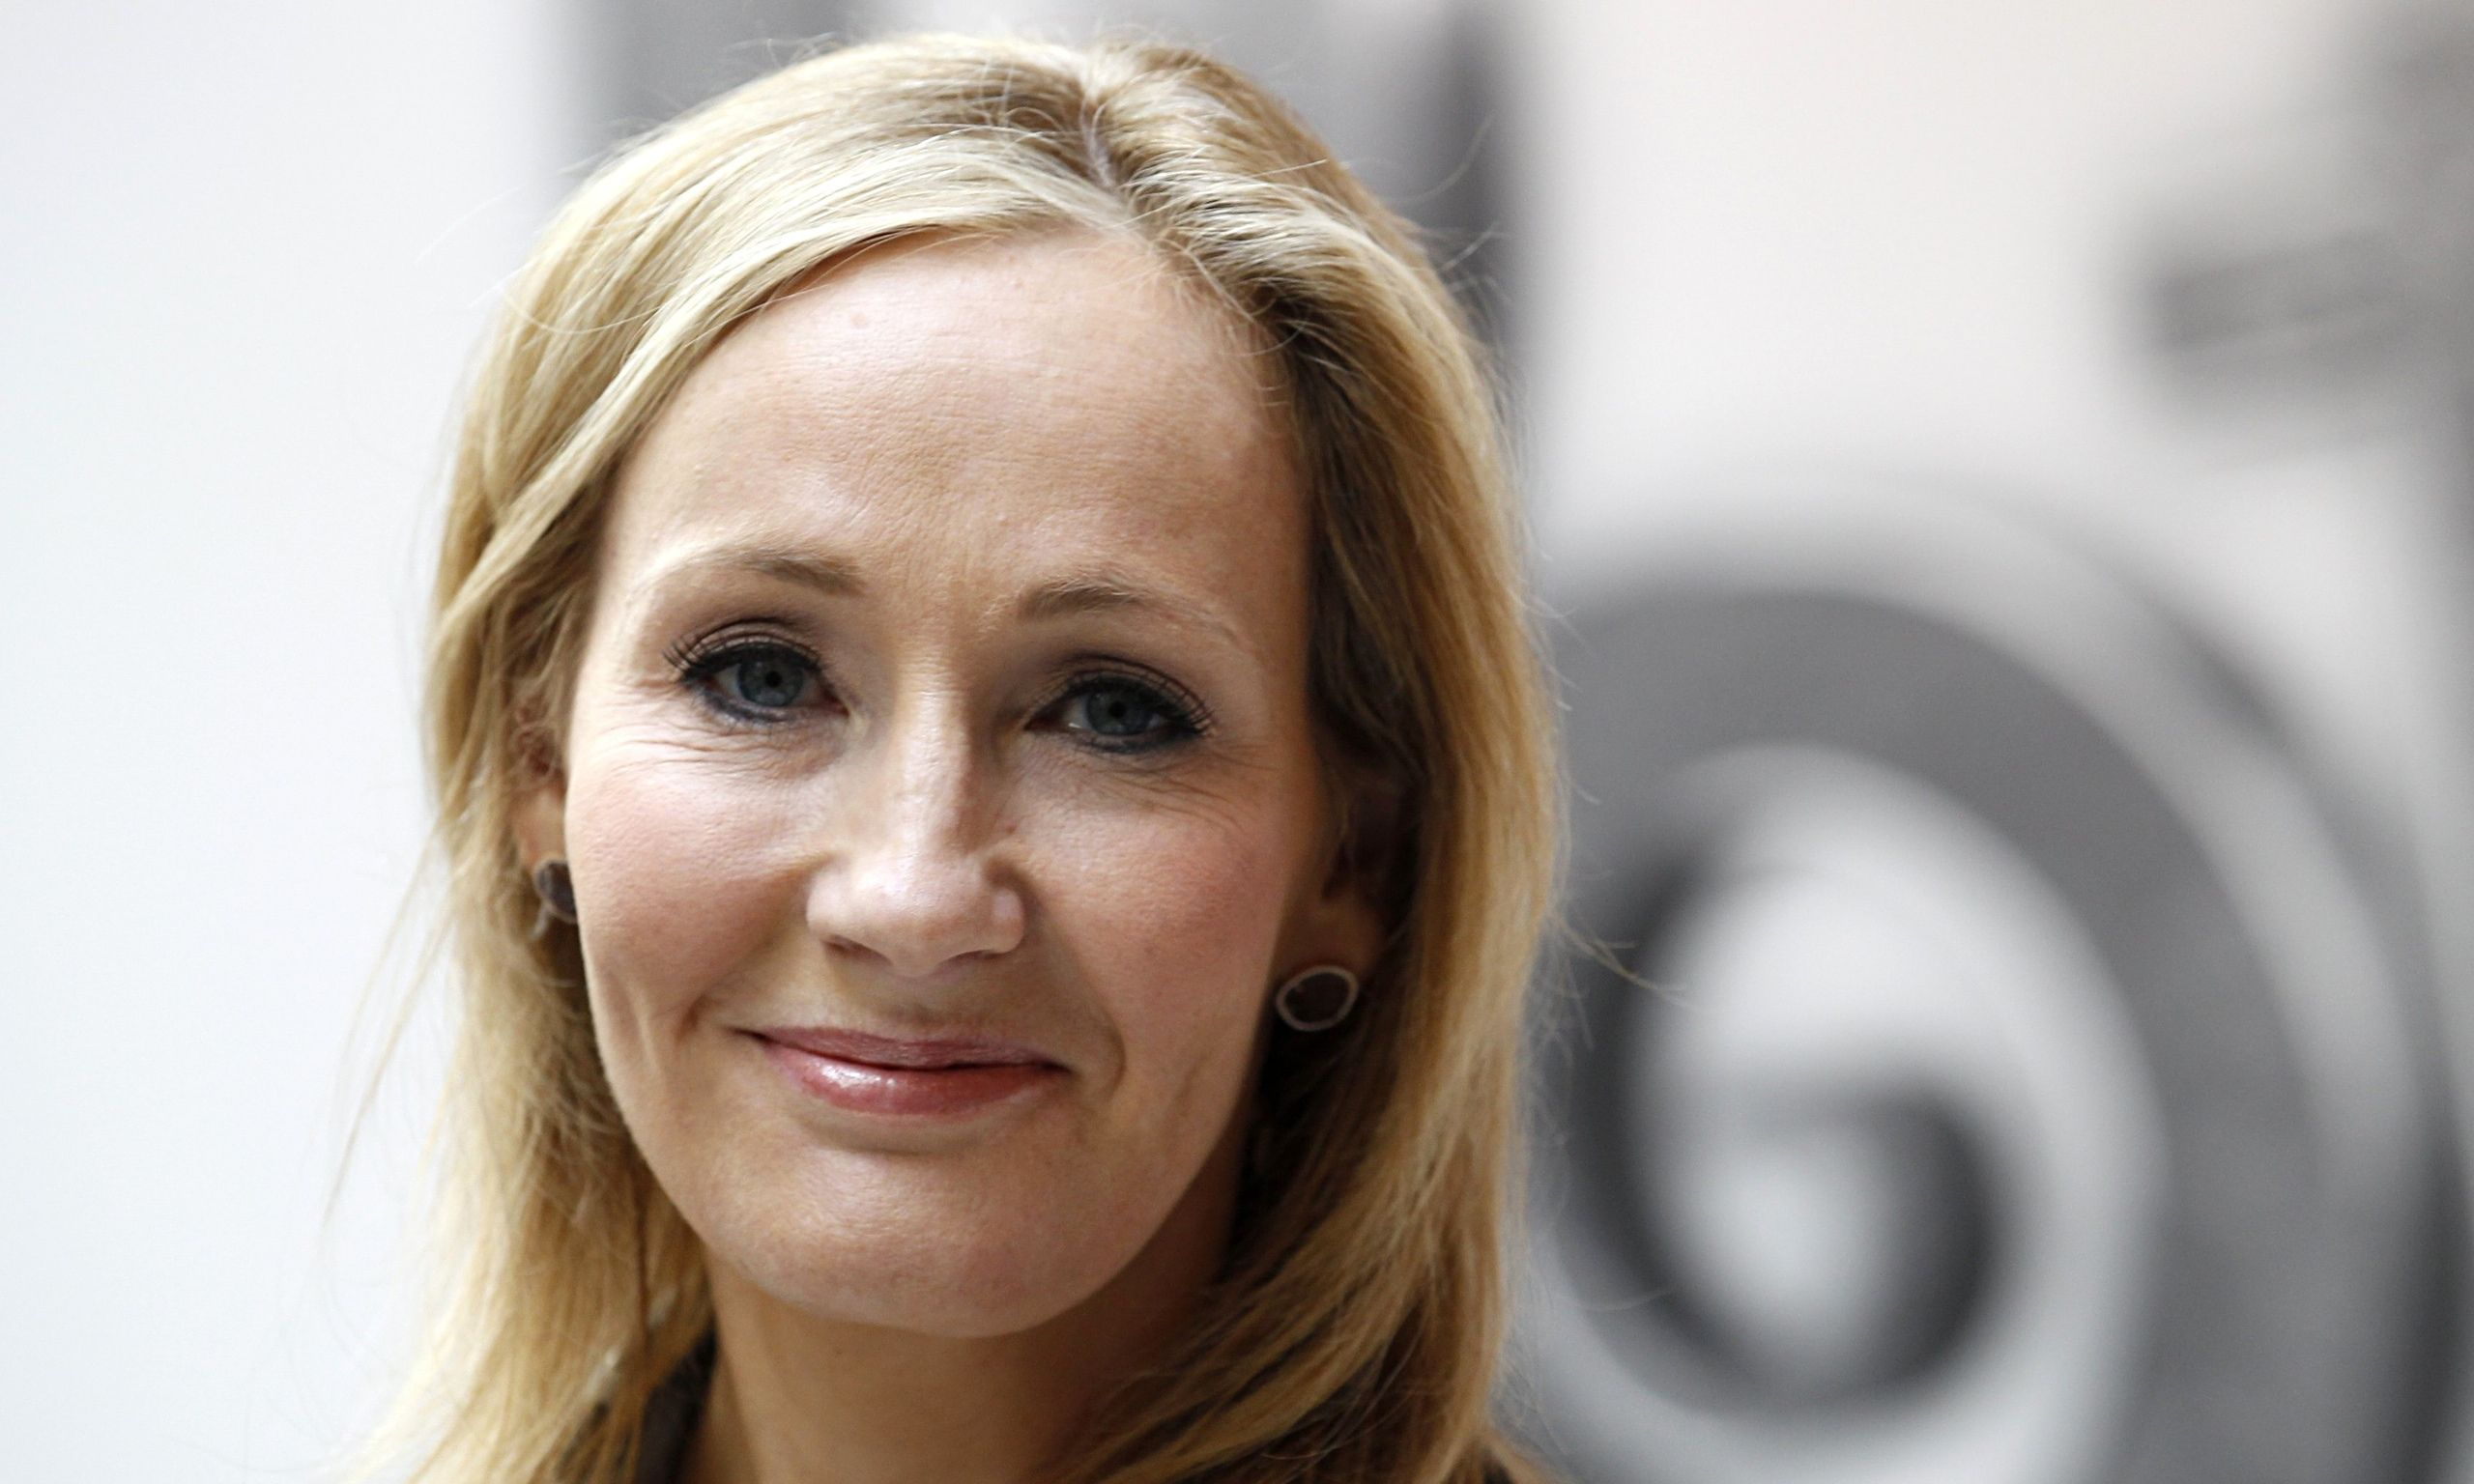 Scotland police to investigate online abuse of JK Rowling